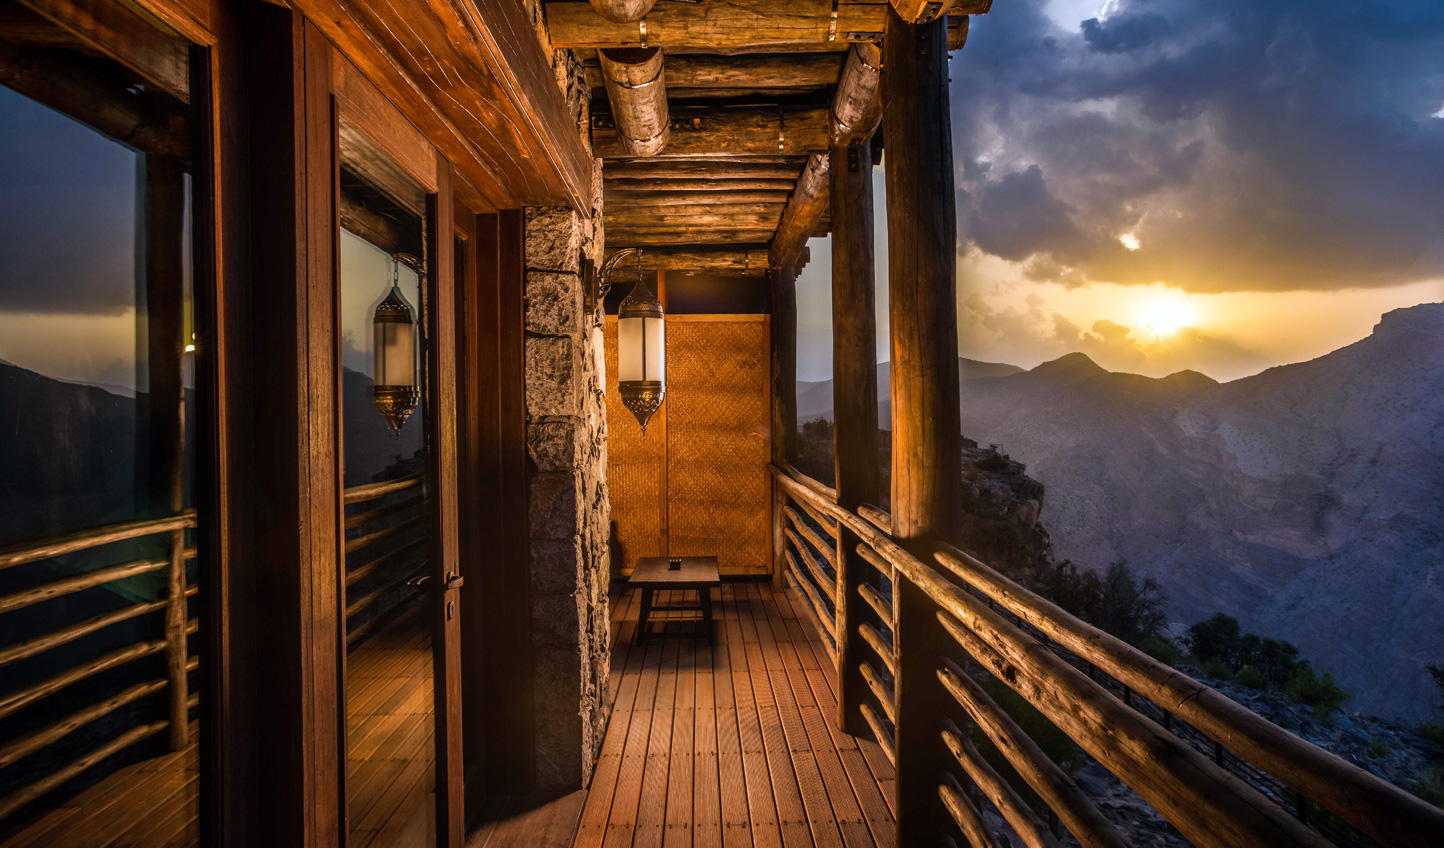 Breathe in the fresh mountain air up at Alila Jabal Akhdar